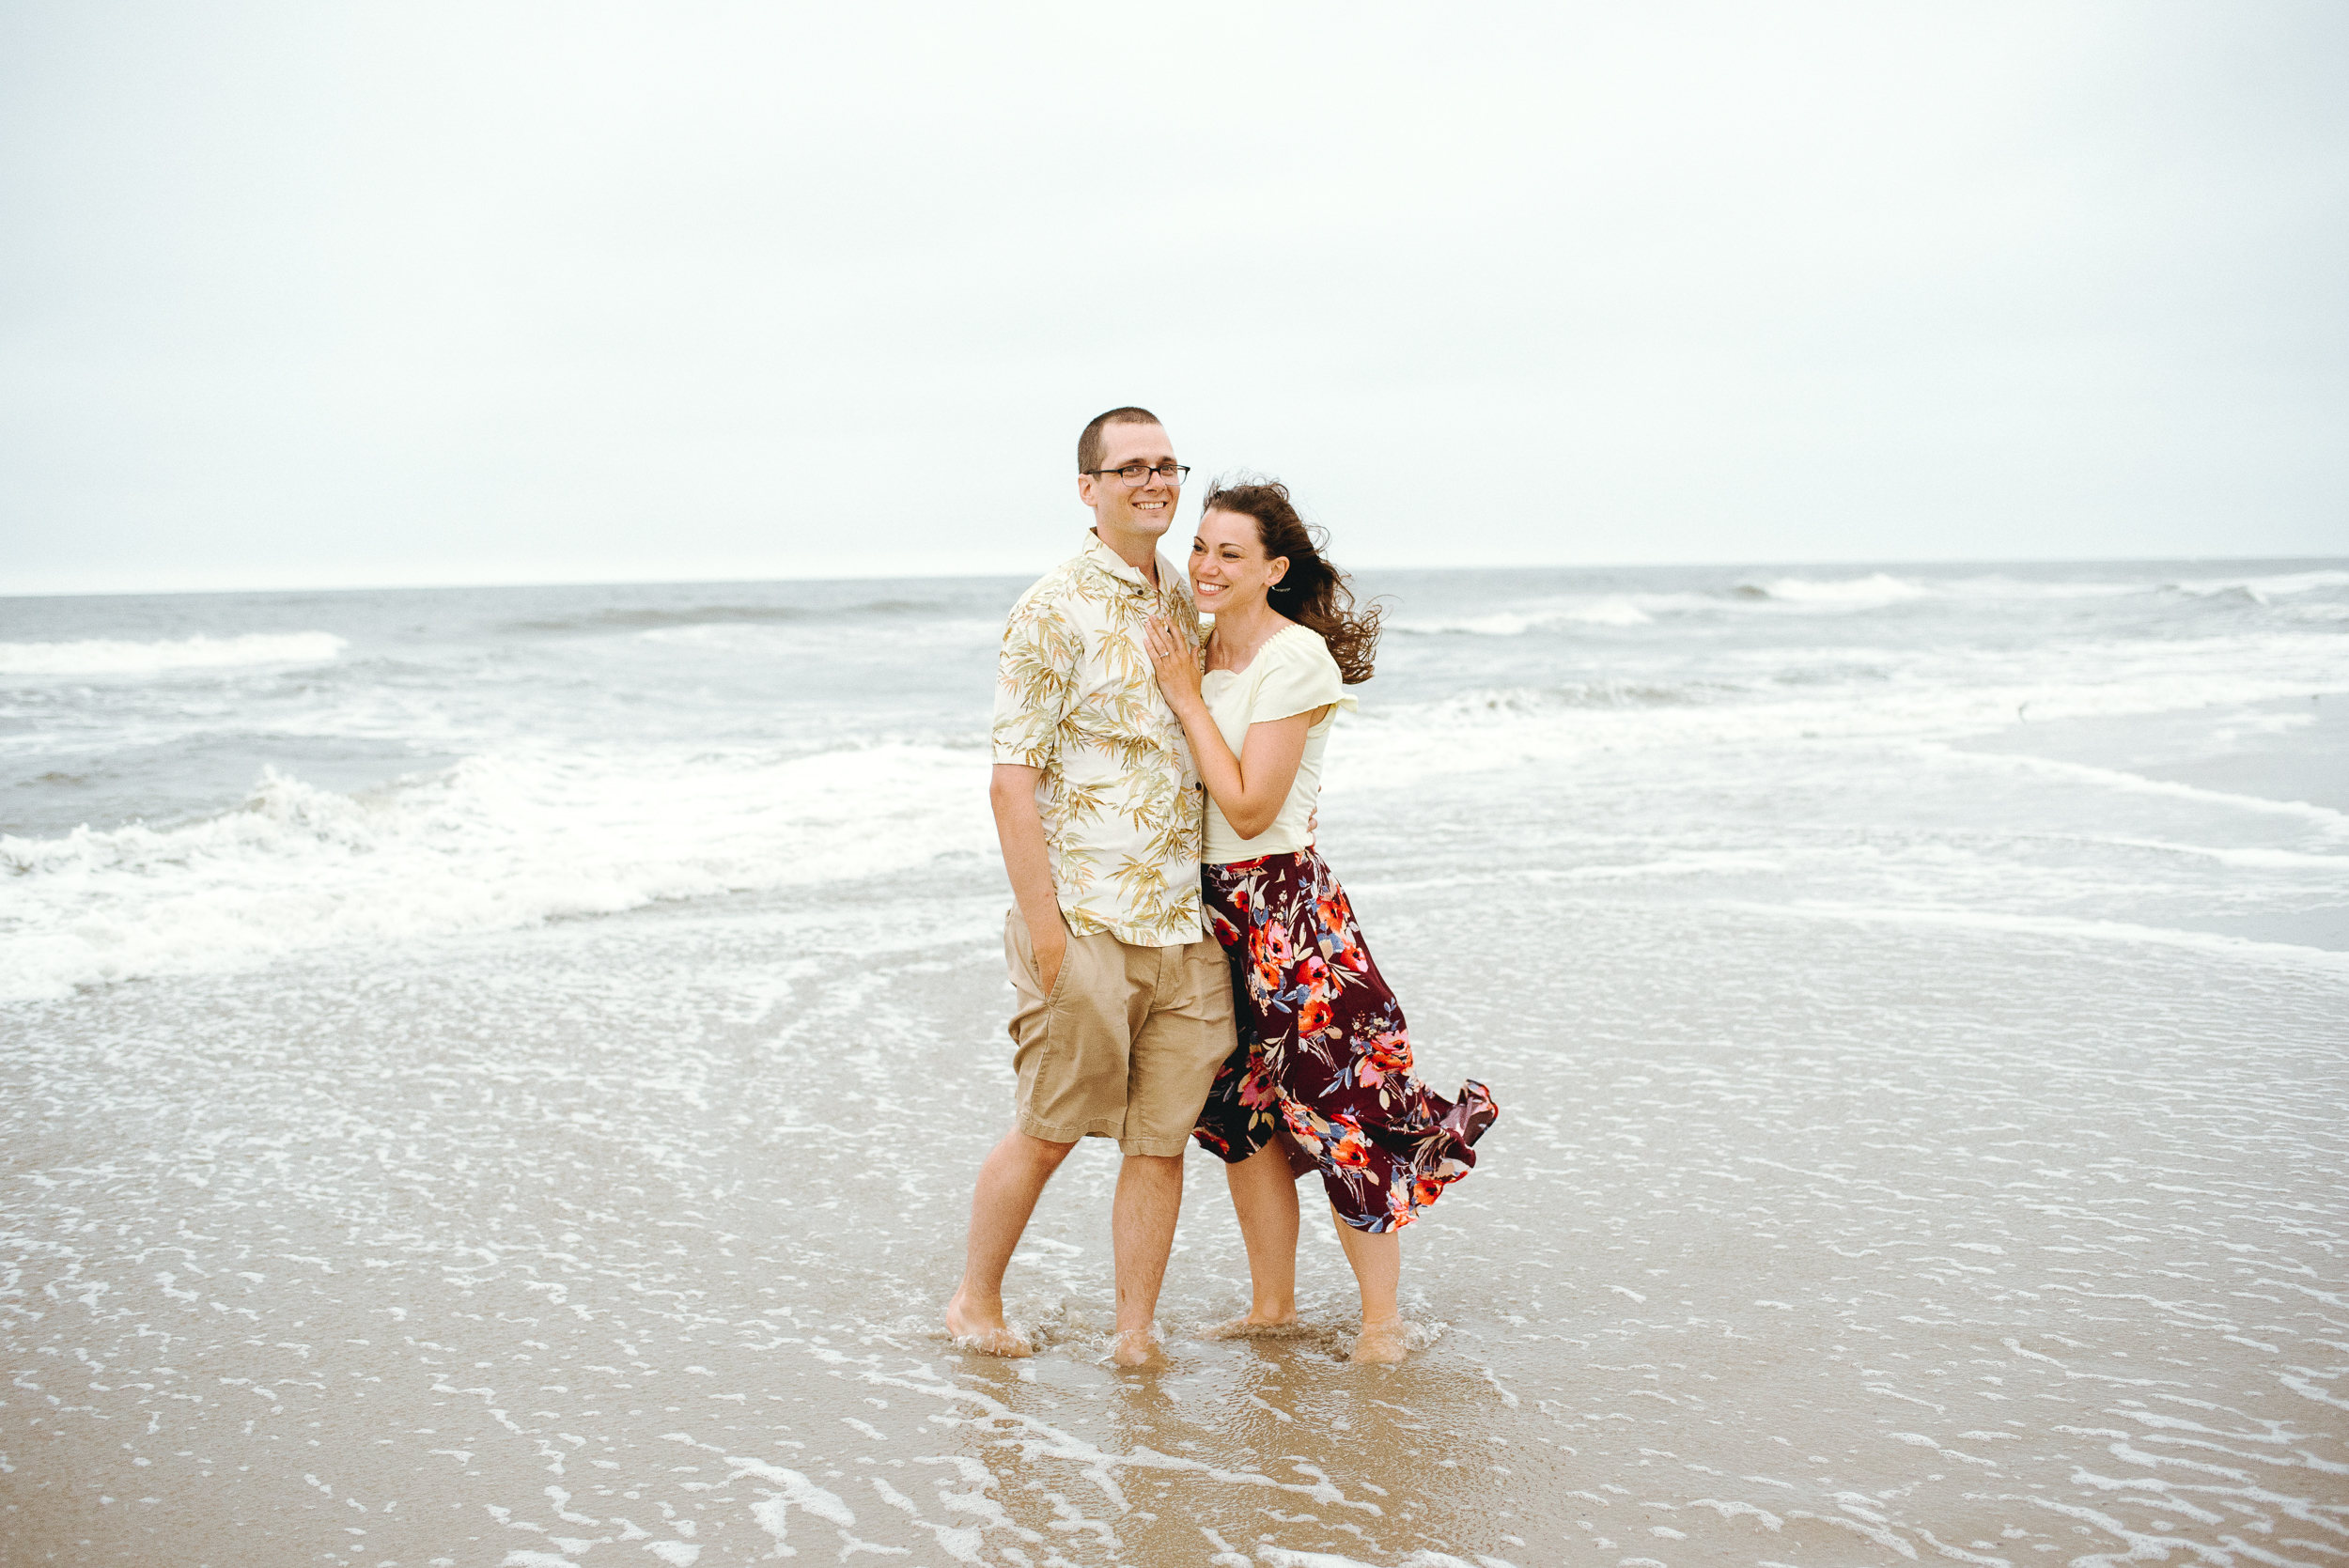 Ocean-City-New-Jersey- Beach-Engagemnt-Peaberry-Photography-Philadelphia-Wedding-Photographer-017.jpg